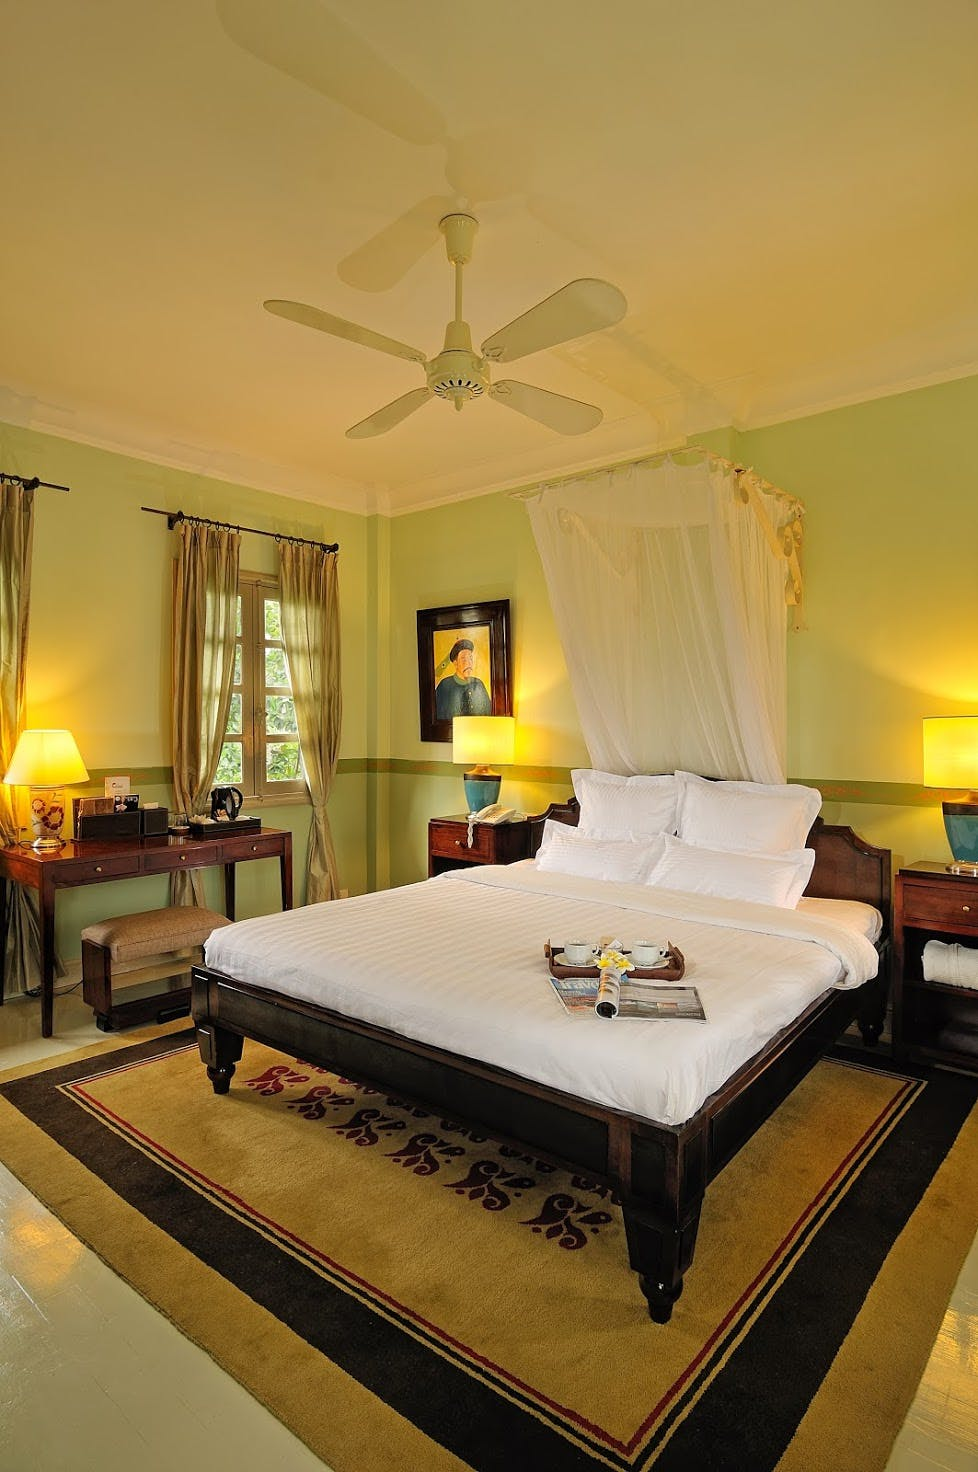 Villa Maly superior room king bed